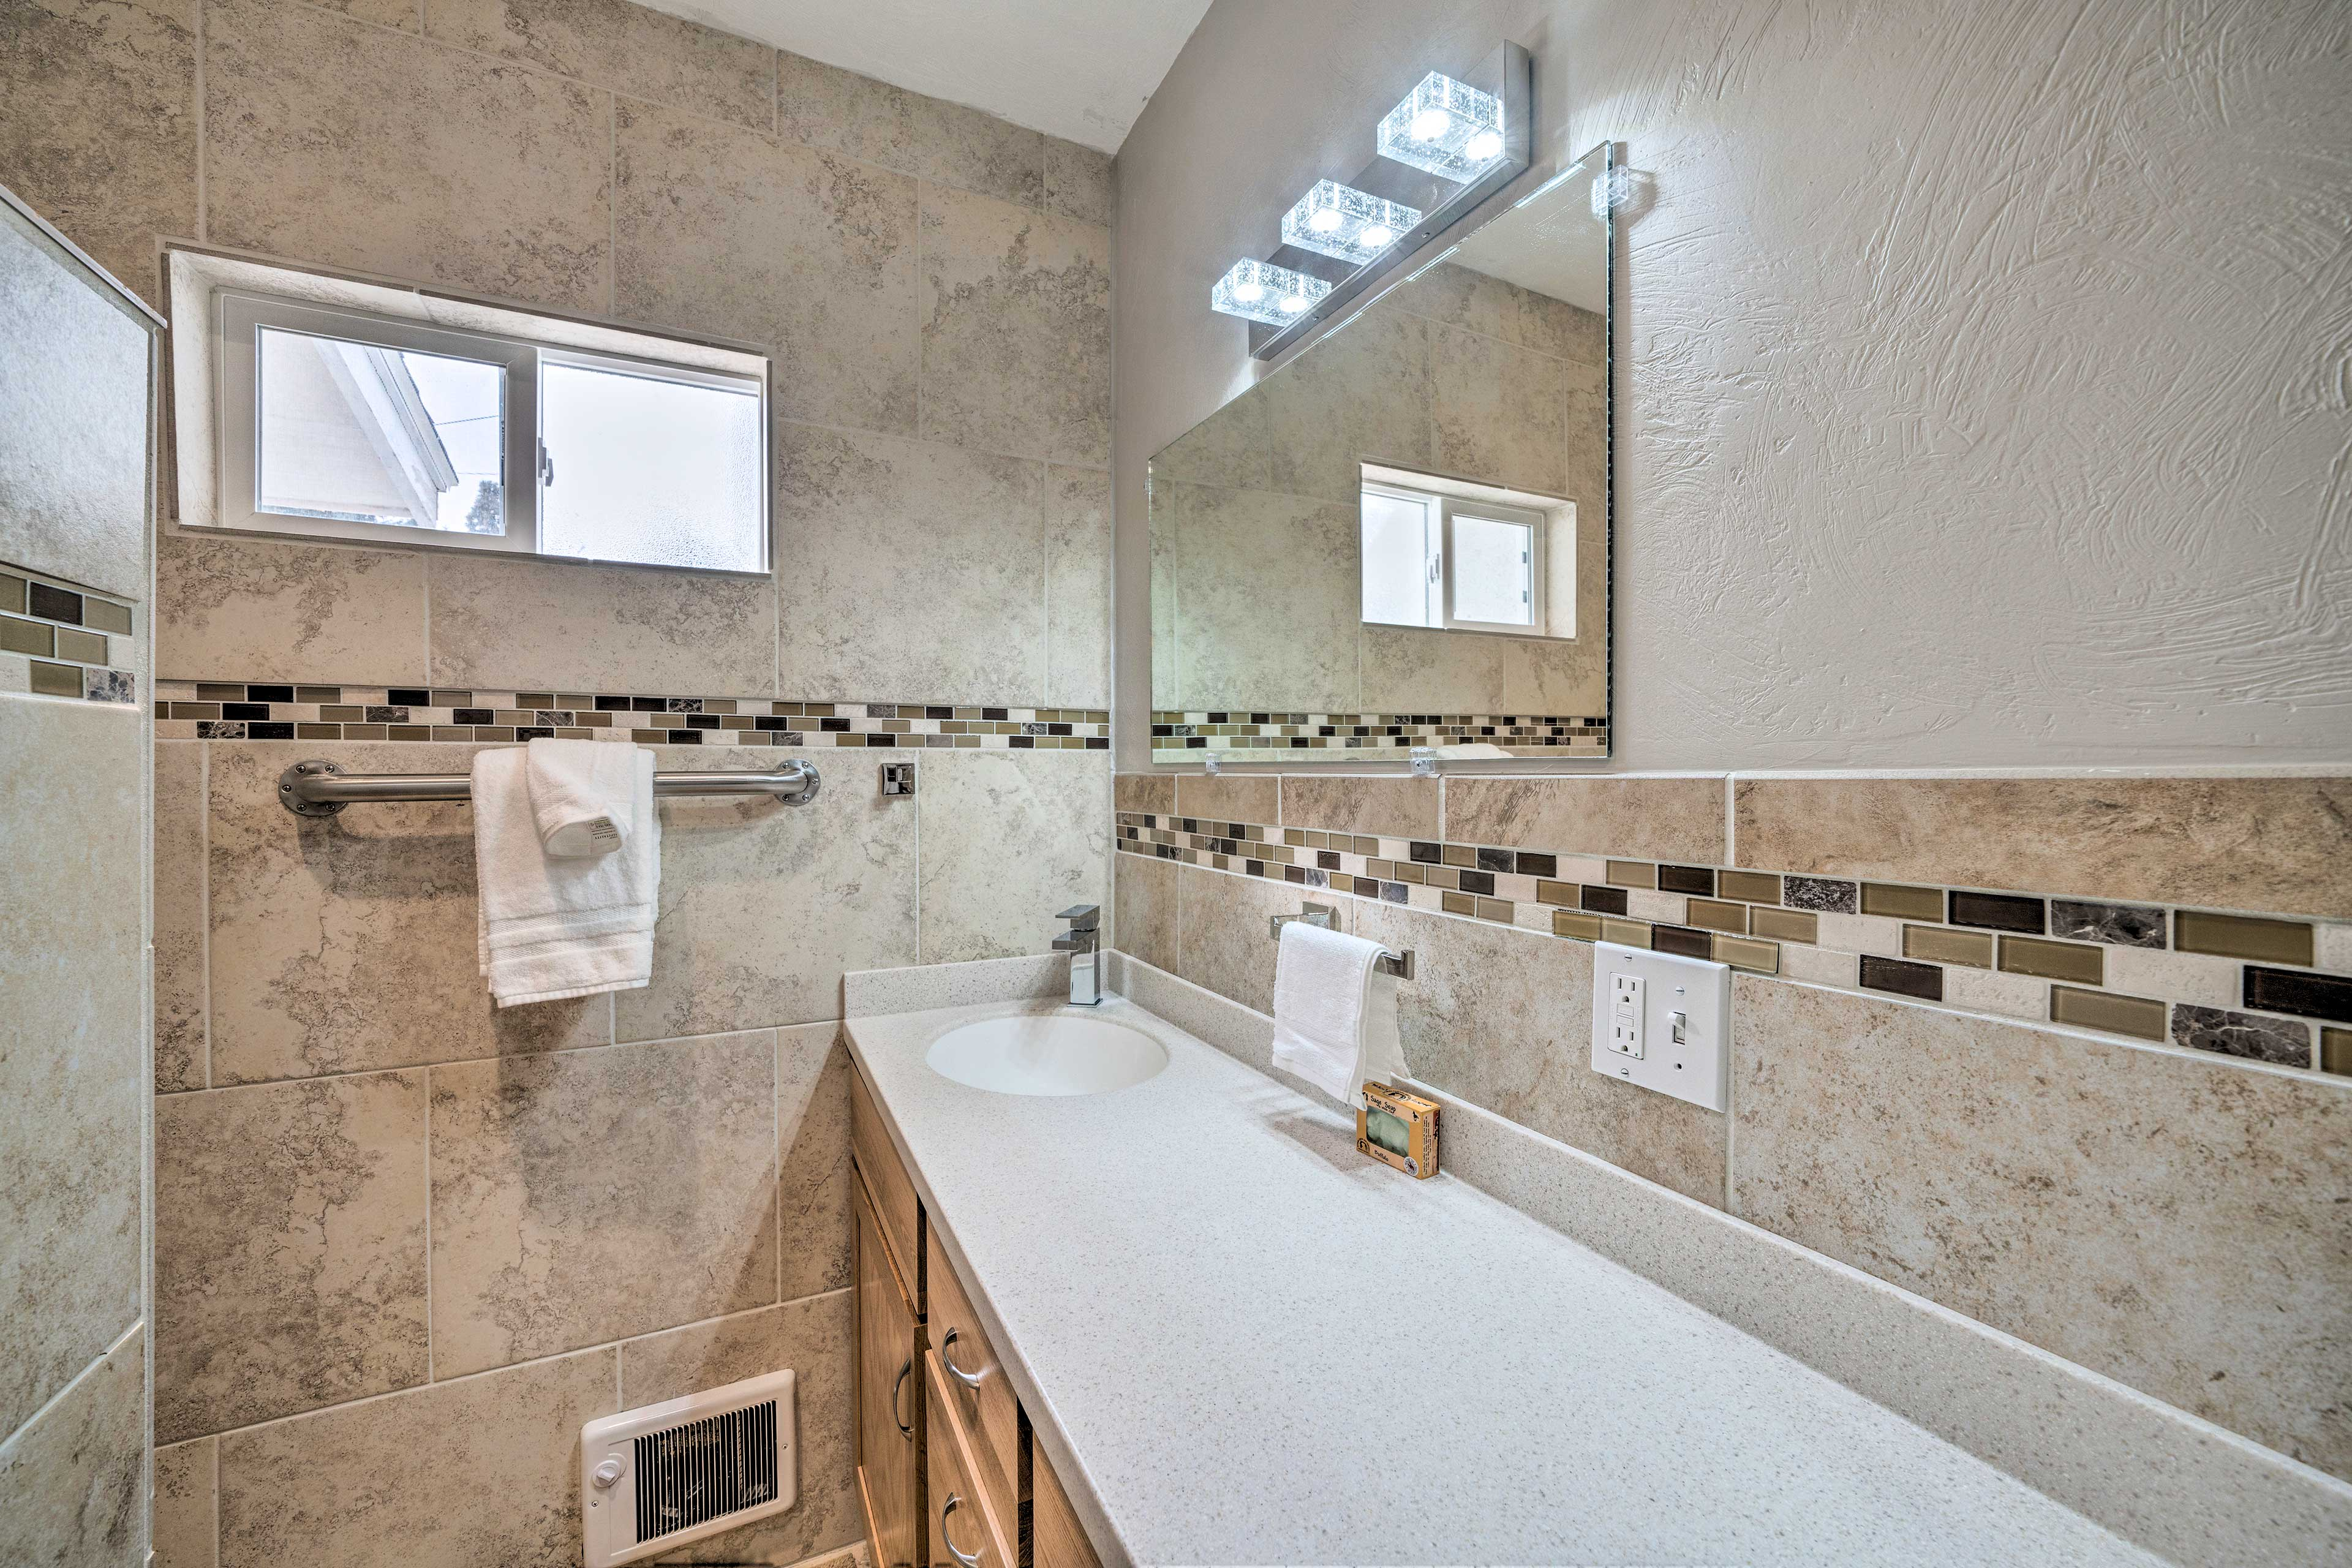 There's enough bathroom counter space for all of your things - and his!